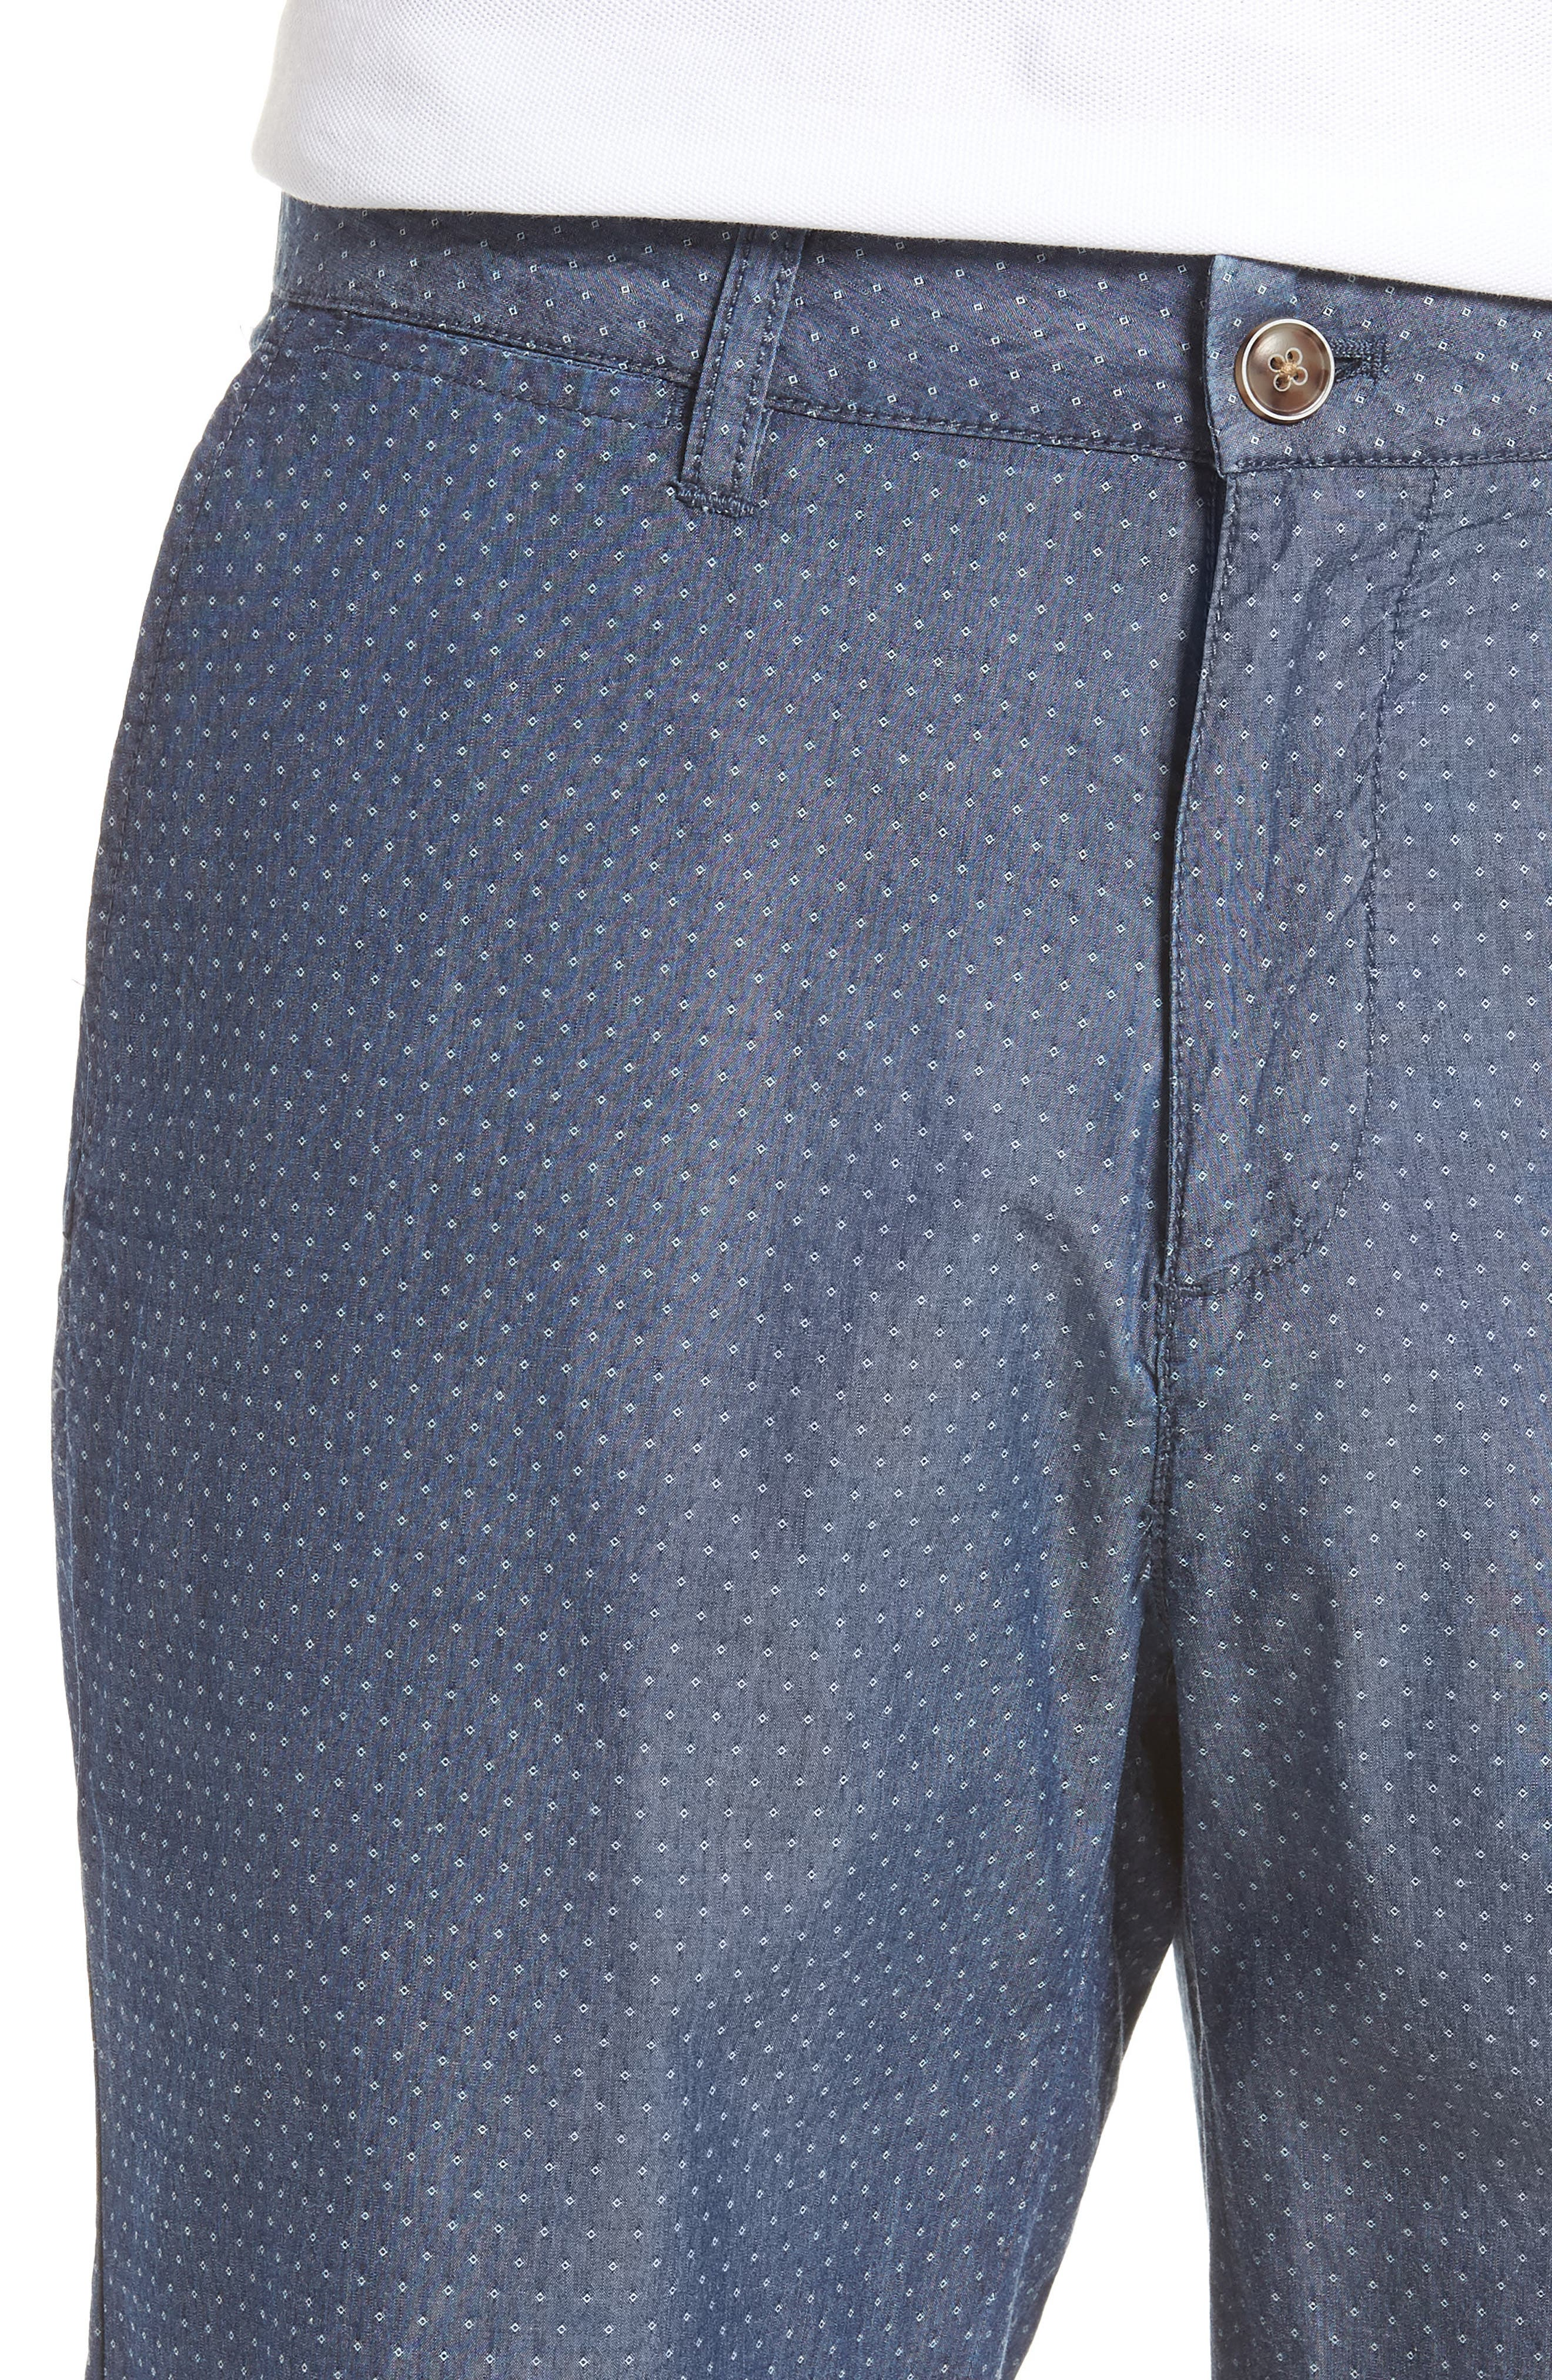 Oliver Classic Fit Chambray Jacquard Shorts,                             Alternate thumbnail 4, color,                             Chambray